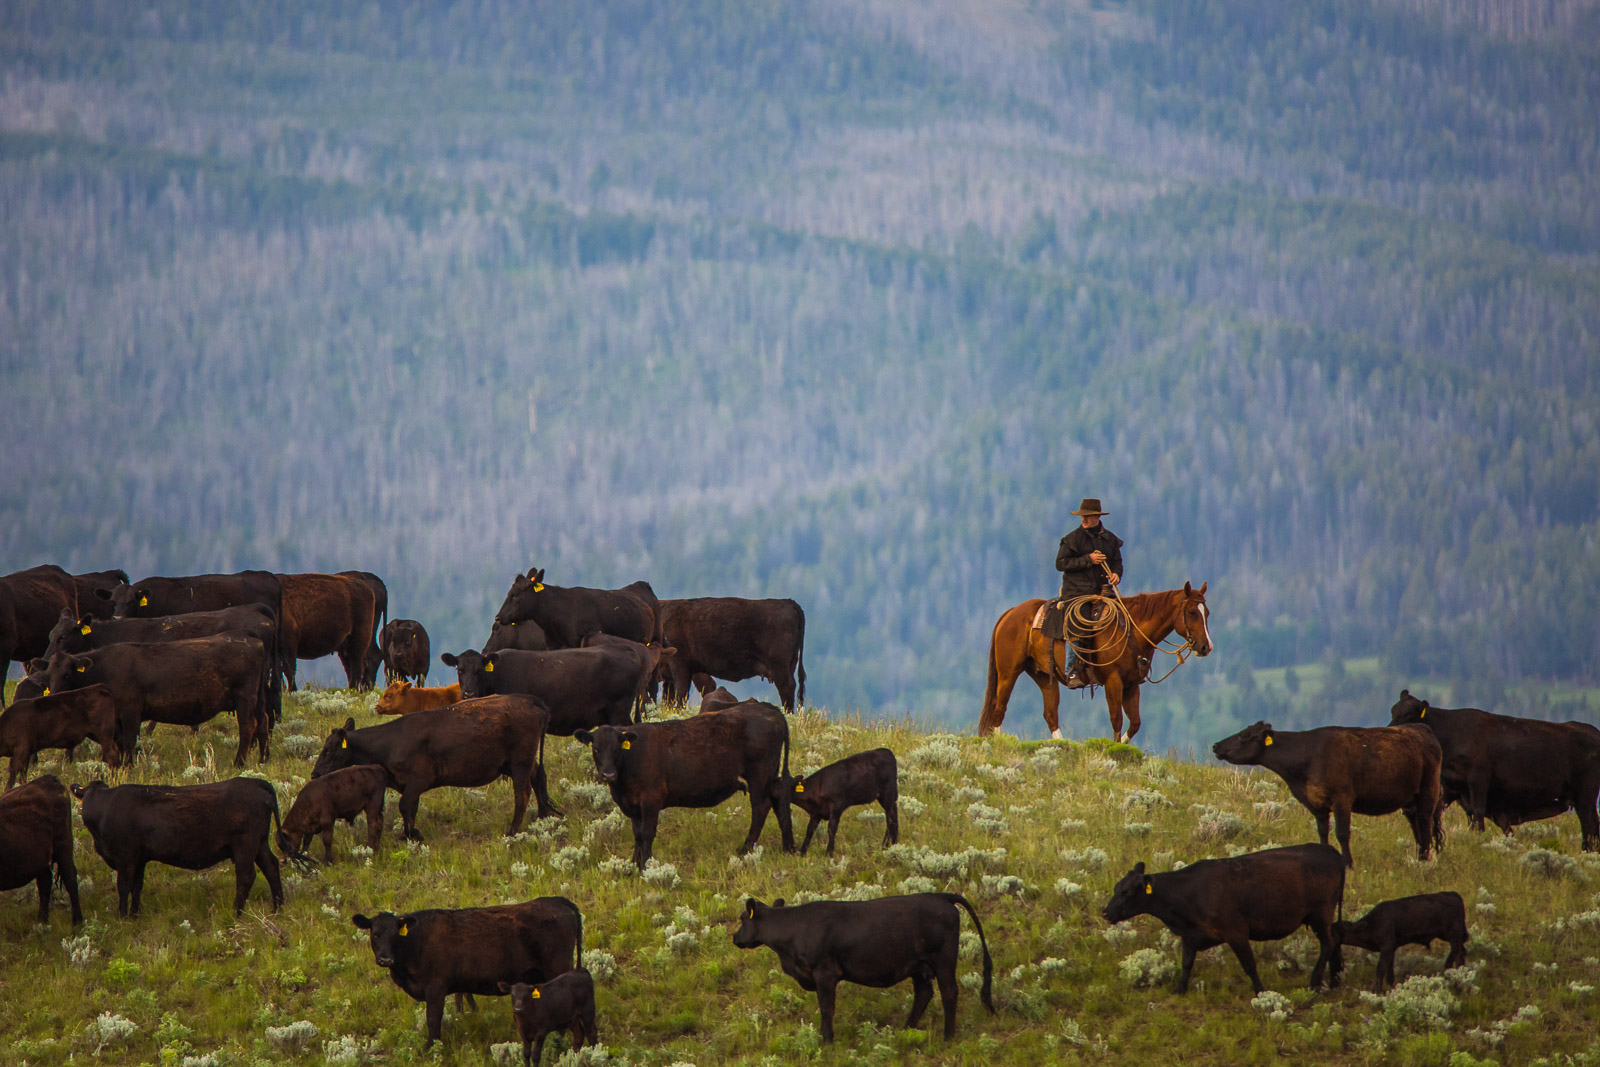 ranch photographer, j bar l ranch, vacation homes, cowboy, holistic cattle management, livestock, montana, usa, horse, mountains, travel photographer, nature photographer, yellowstone grassfed beef